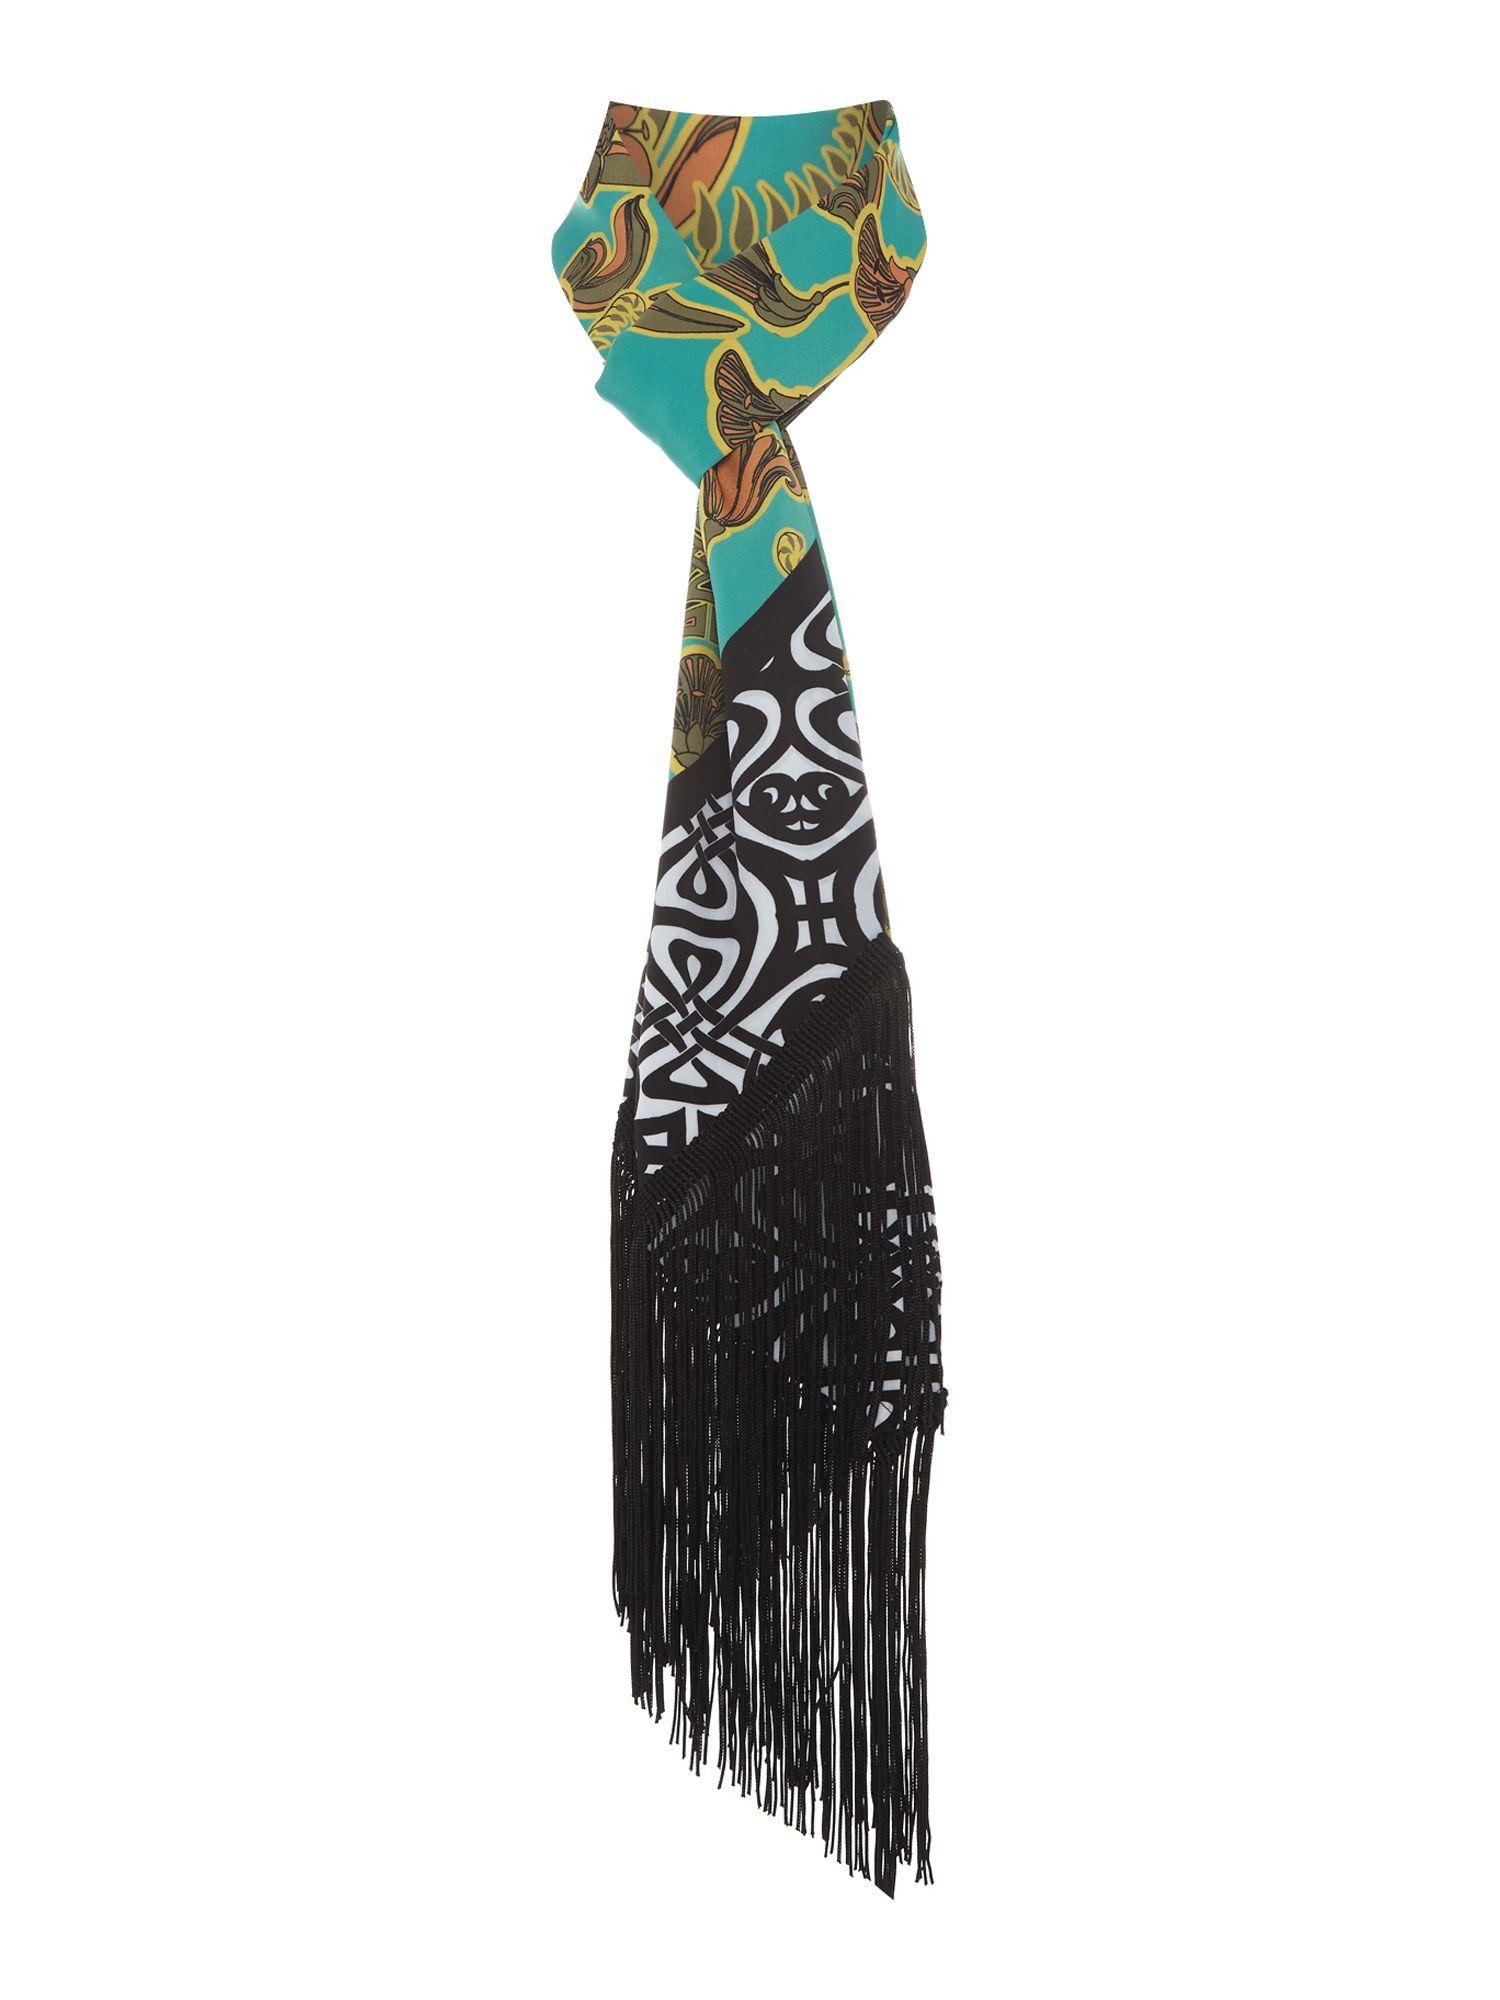 Vintage Scarves- New in the 1920s to 1960s Styles Biba Printed Skinny Tassle Scarf £35.00 AT vintagedancer.com